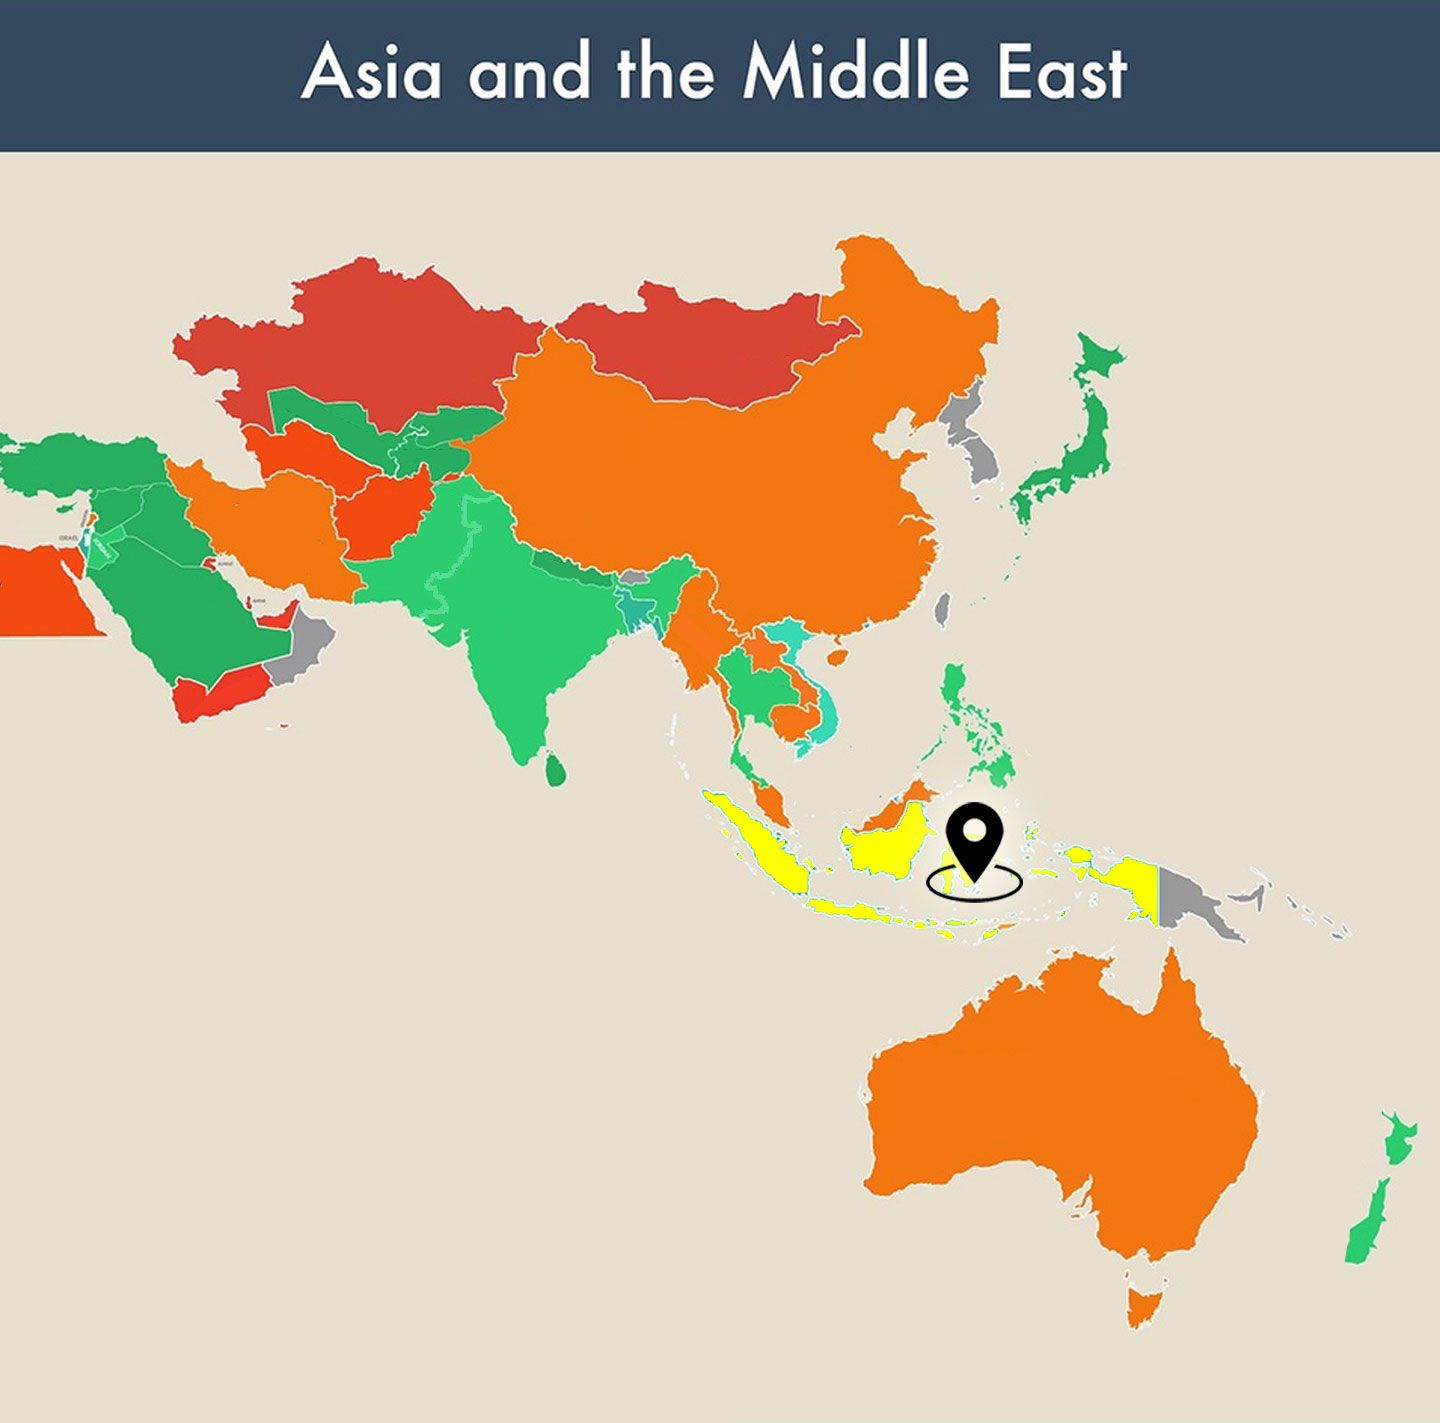 countries of the world empty map - indonesia image